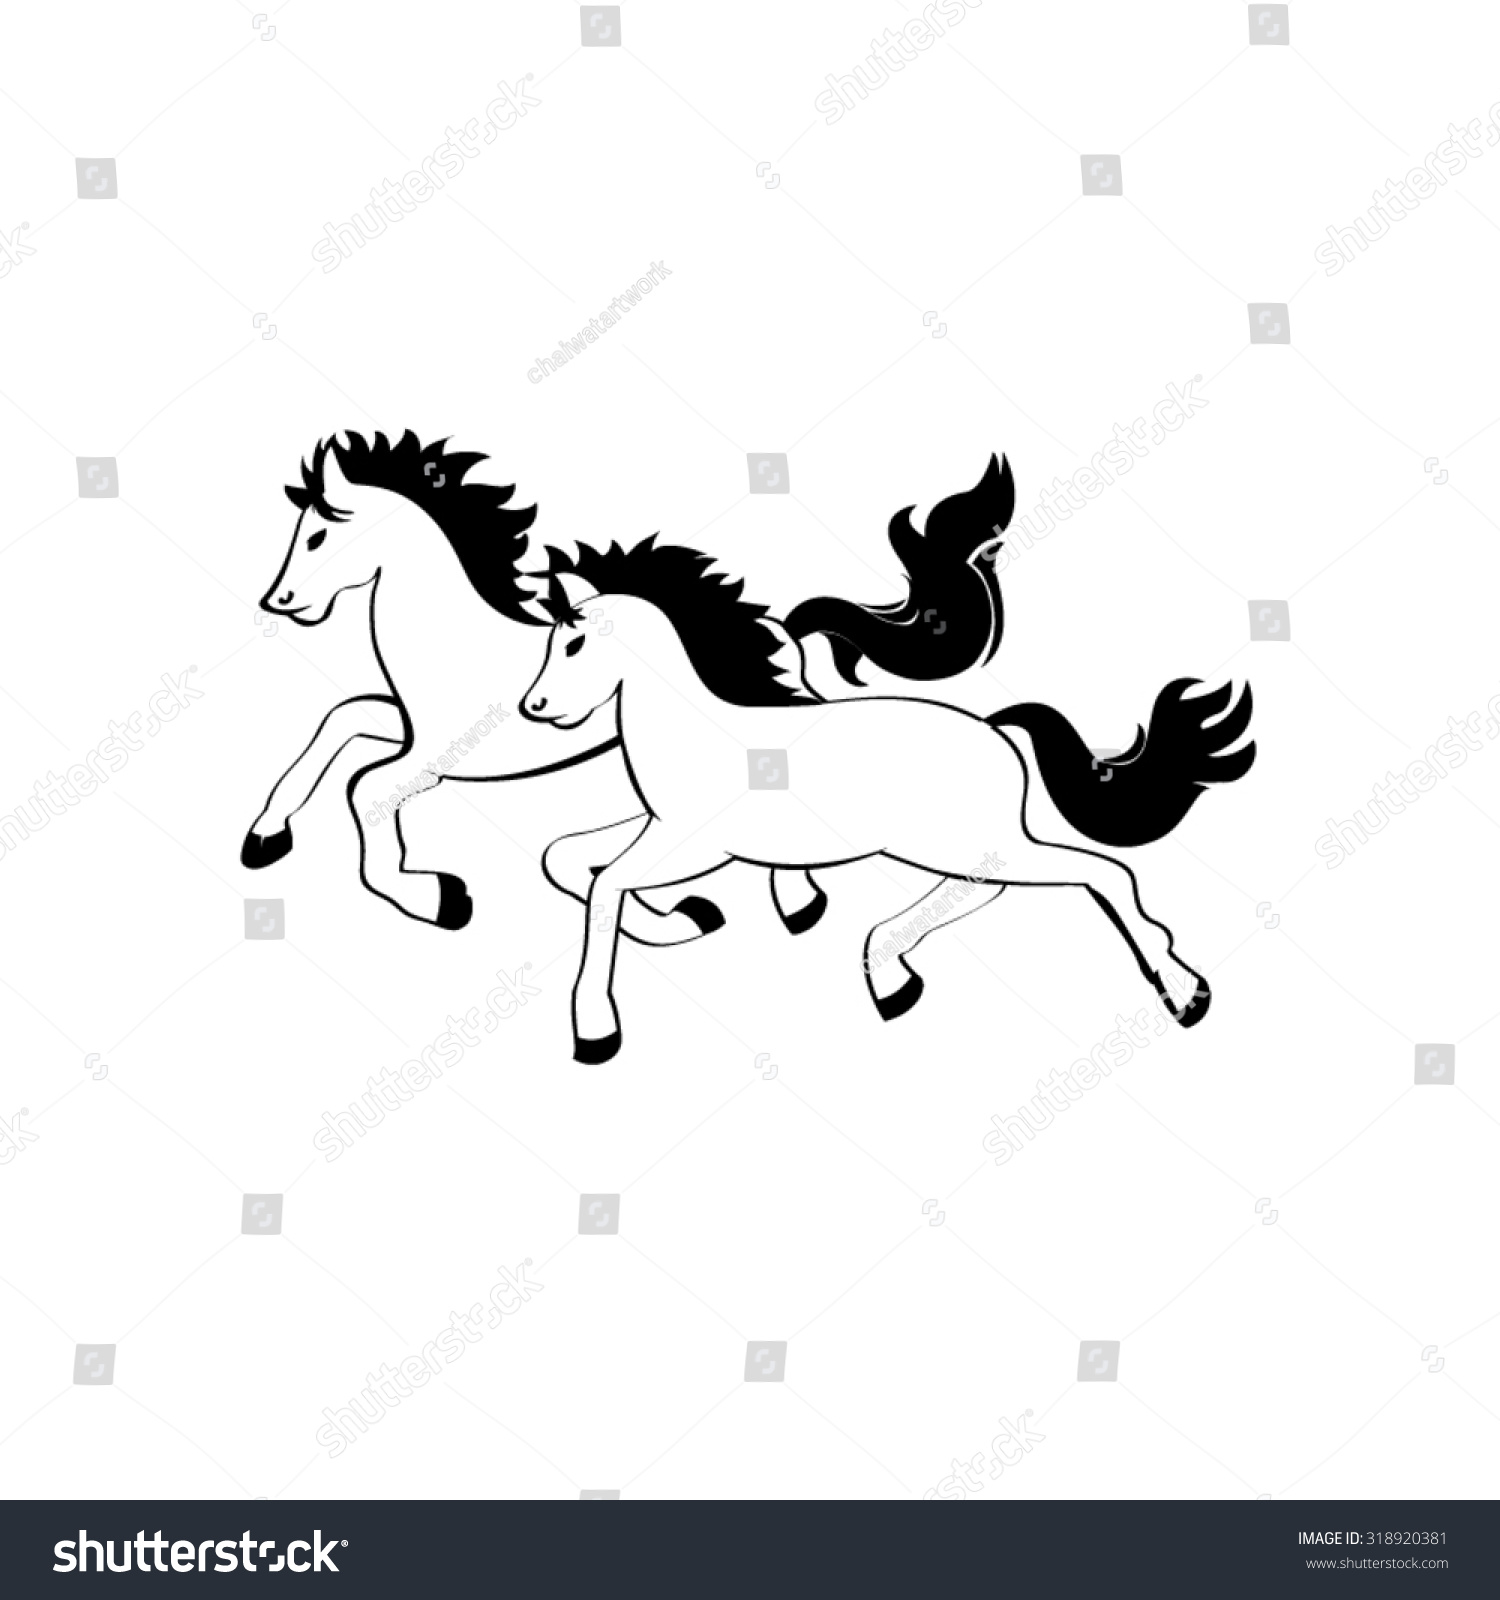 Line Drawing Two Horses Stock Vector Royalty Free 318920381